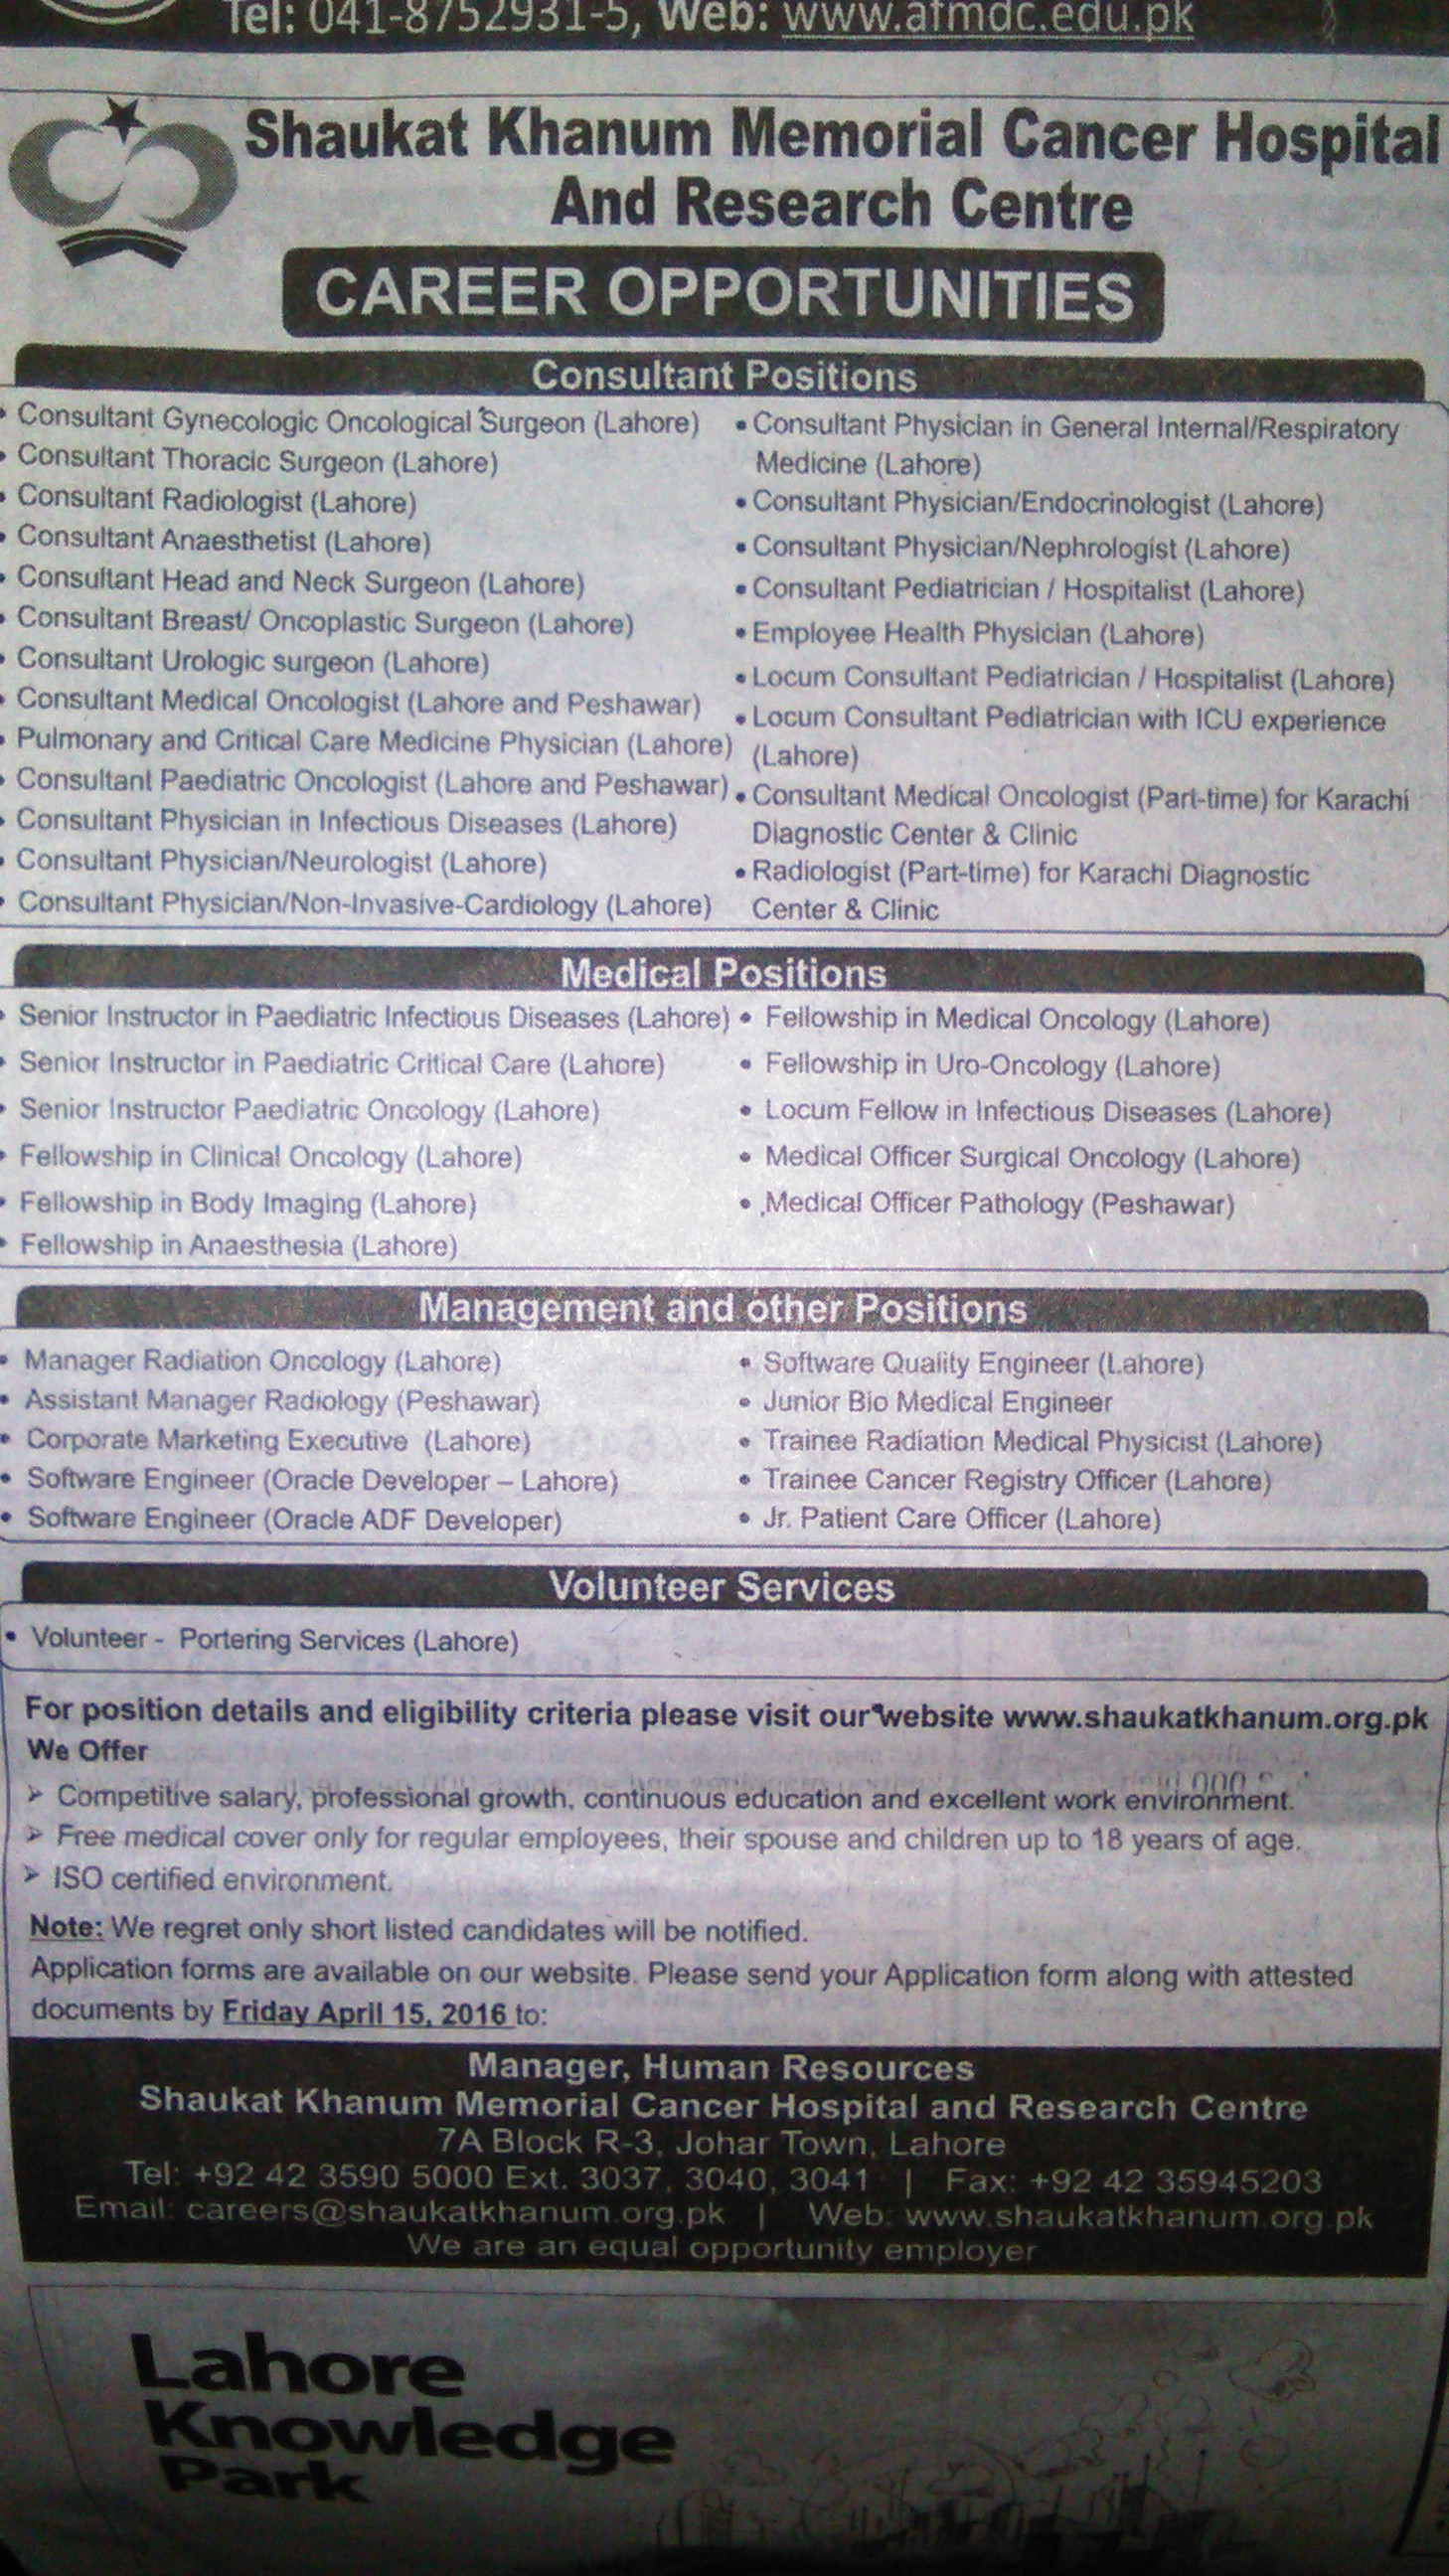 Shaukat Khanam Memorial Cancer Hospital Jobs 2016